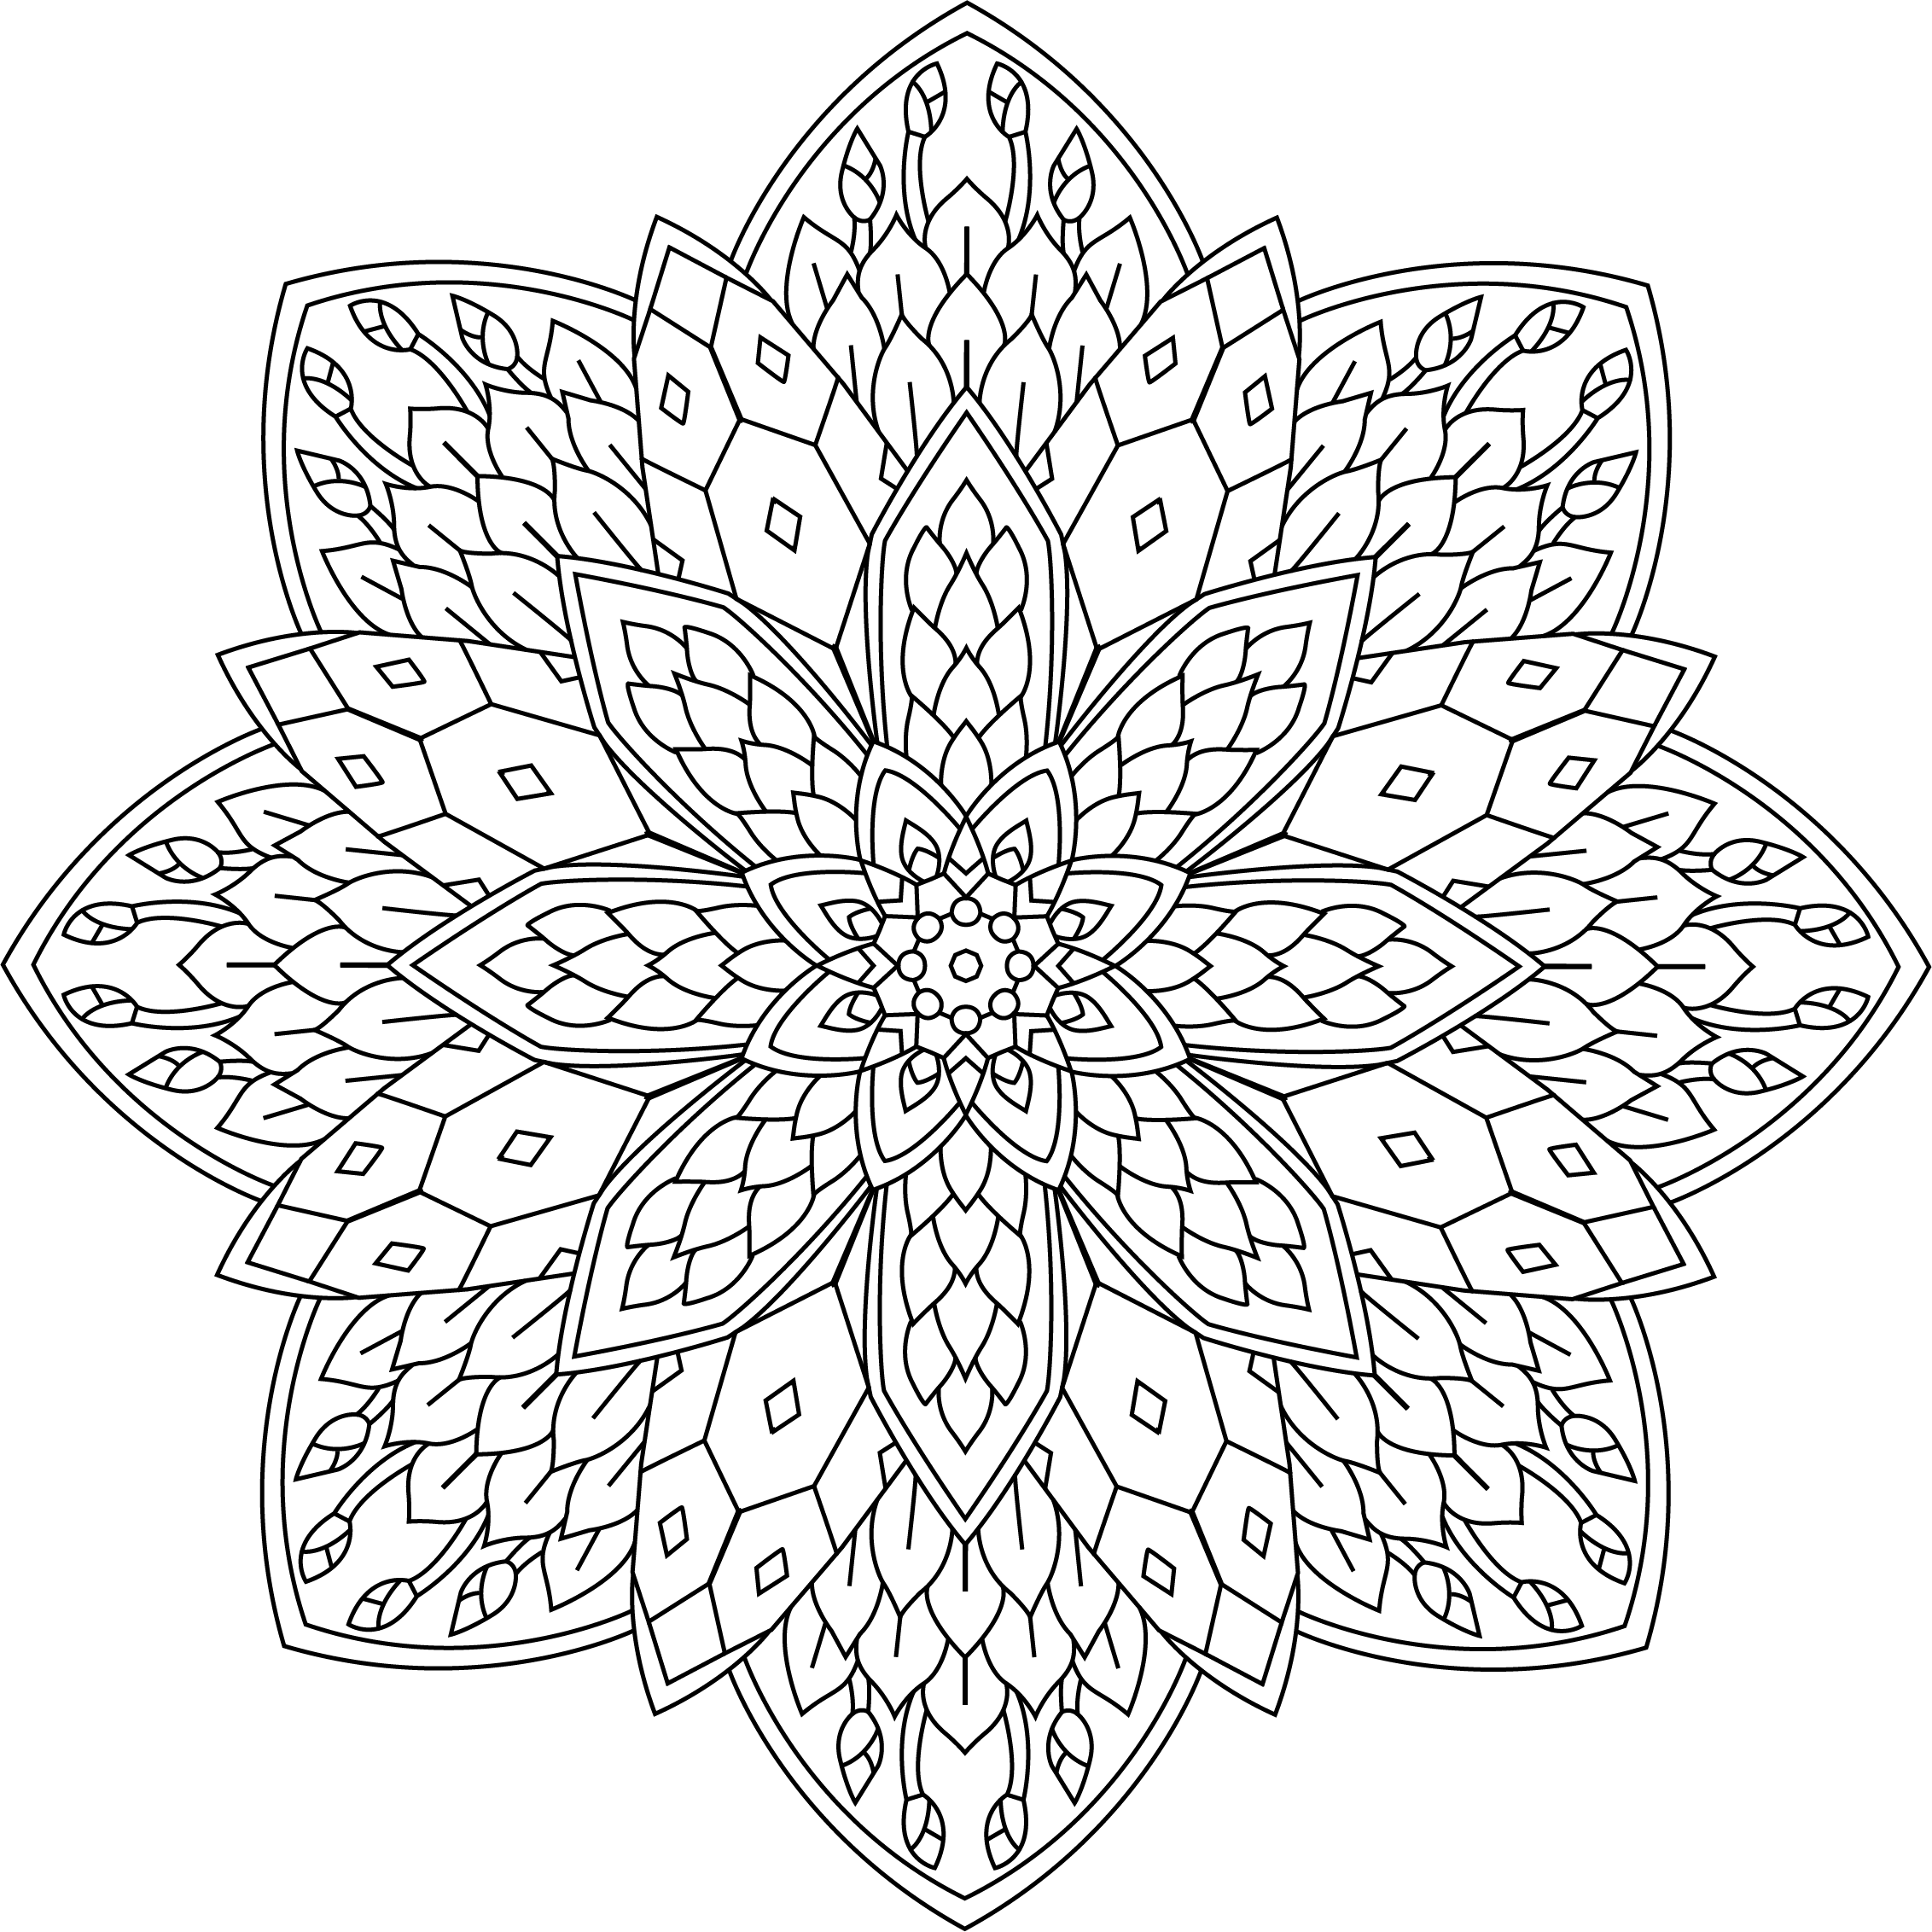 pin by drawissimo how to draw on mandala coloring